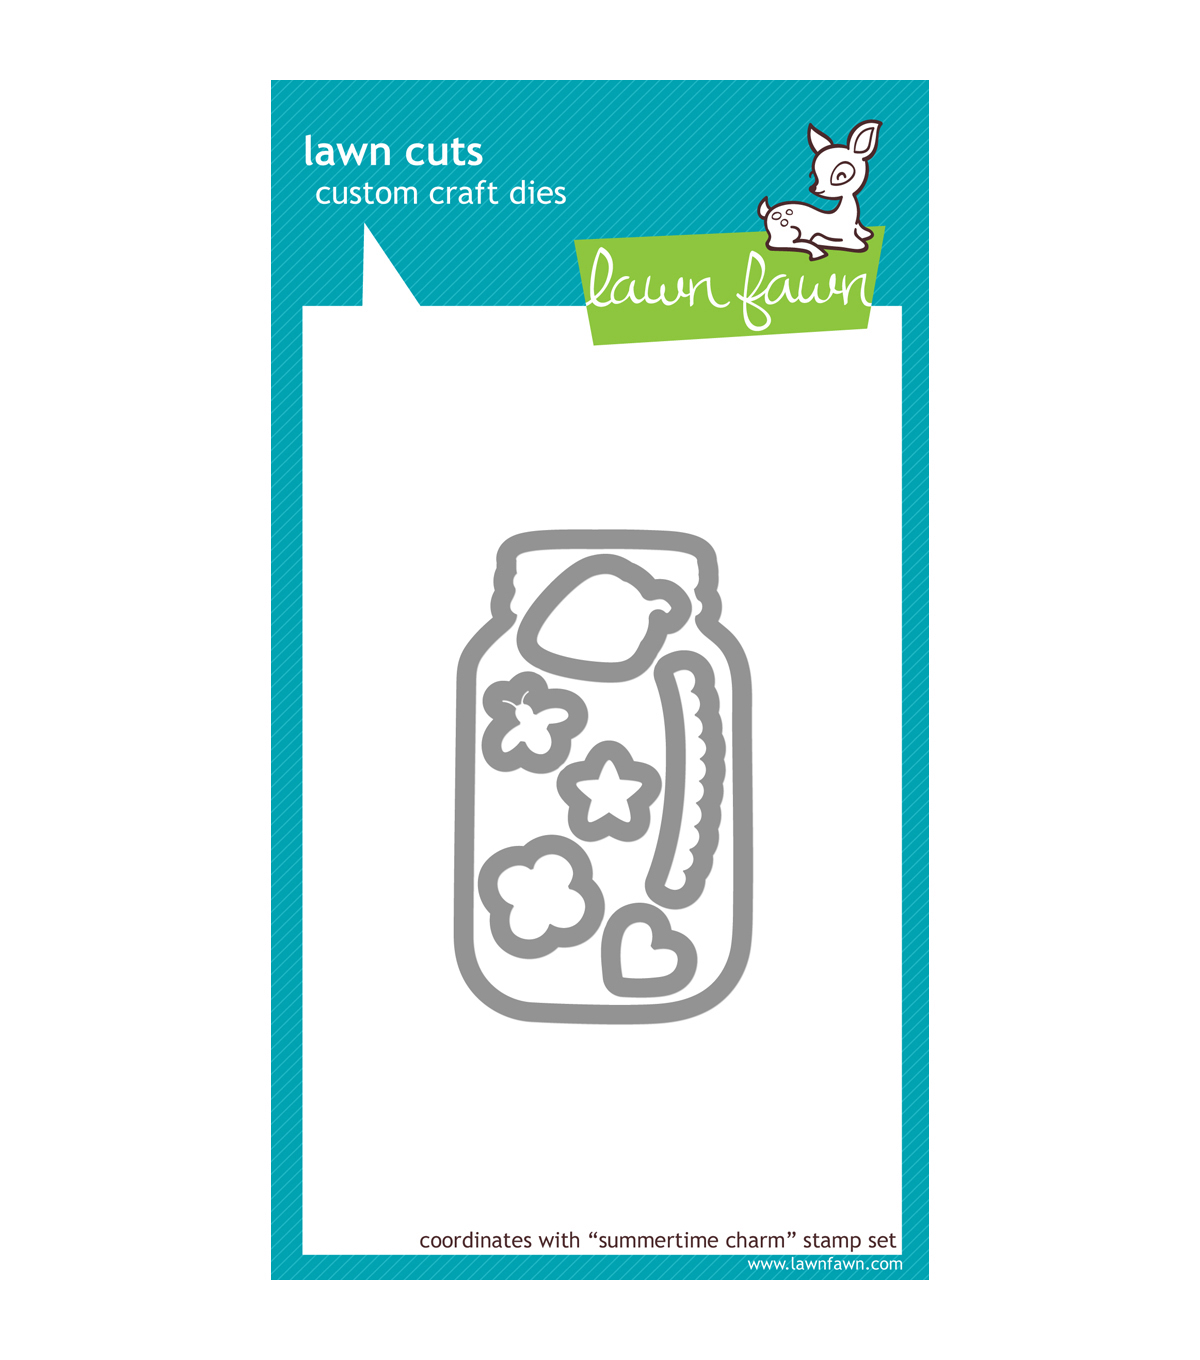 Lawn Fawn Lawn Cuts Custom Craft Die -Summertime Charm